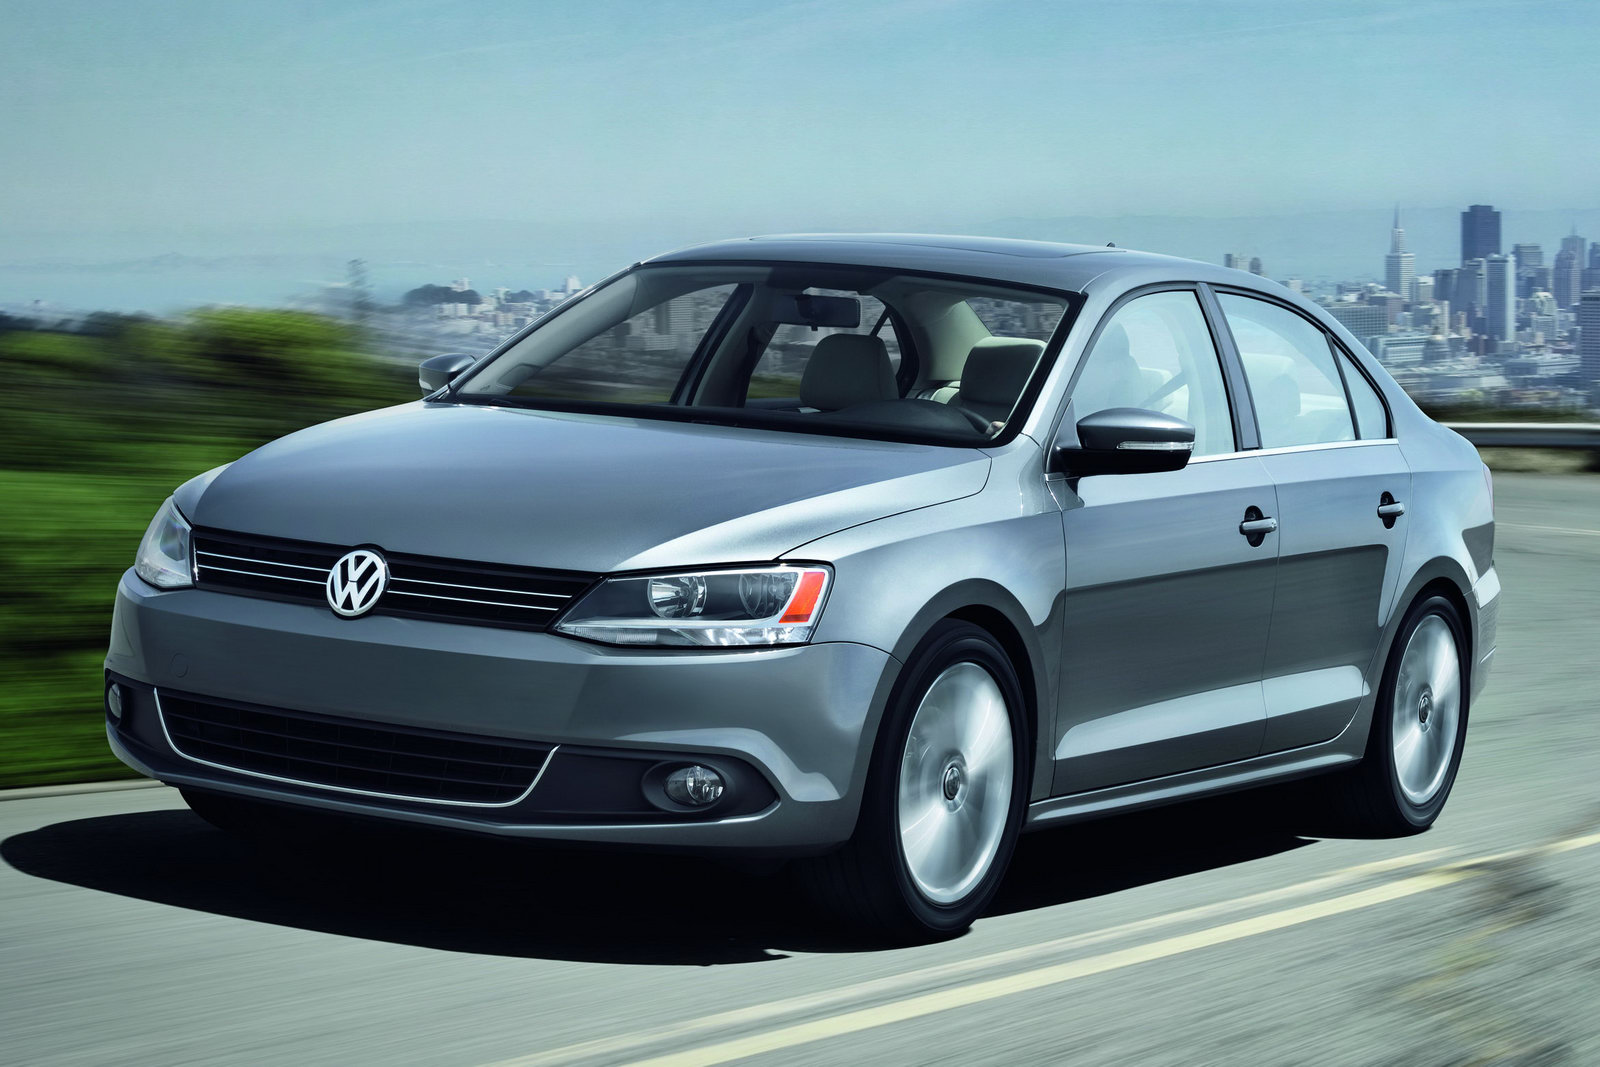 2011 Volkswagen Jetta Wallpaper